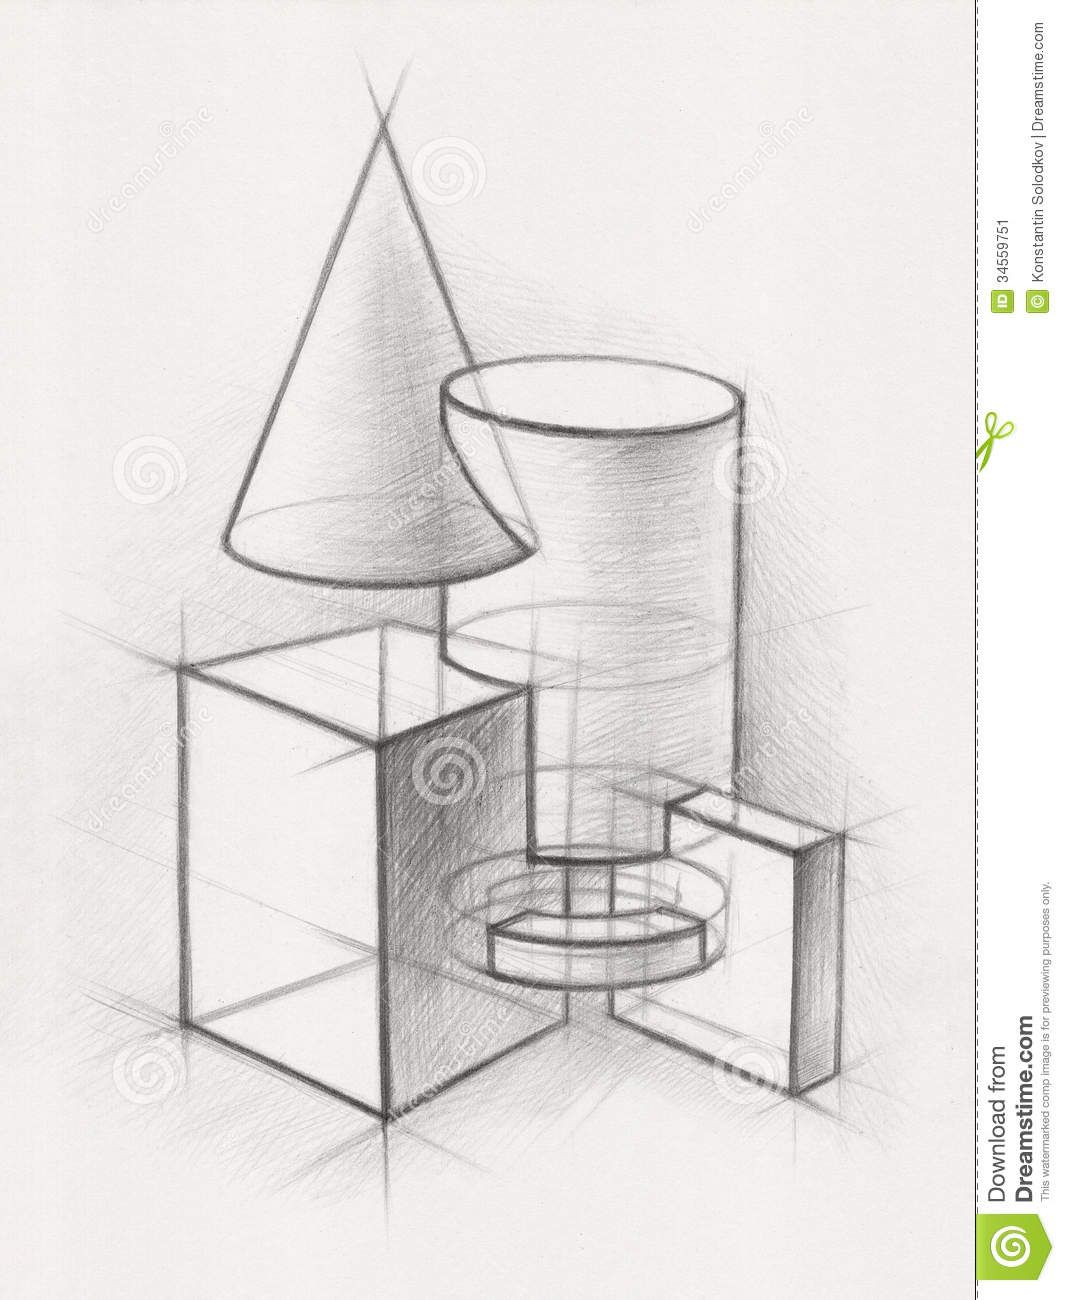 3d Shape Line Drawings : Solid geometric shapes illustration pencil drawing